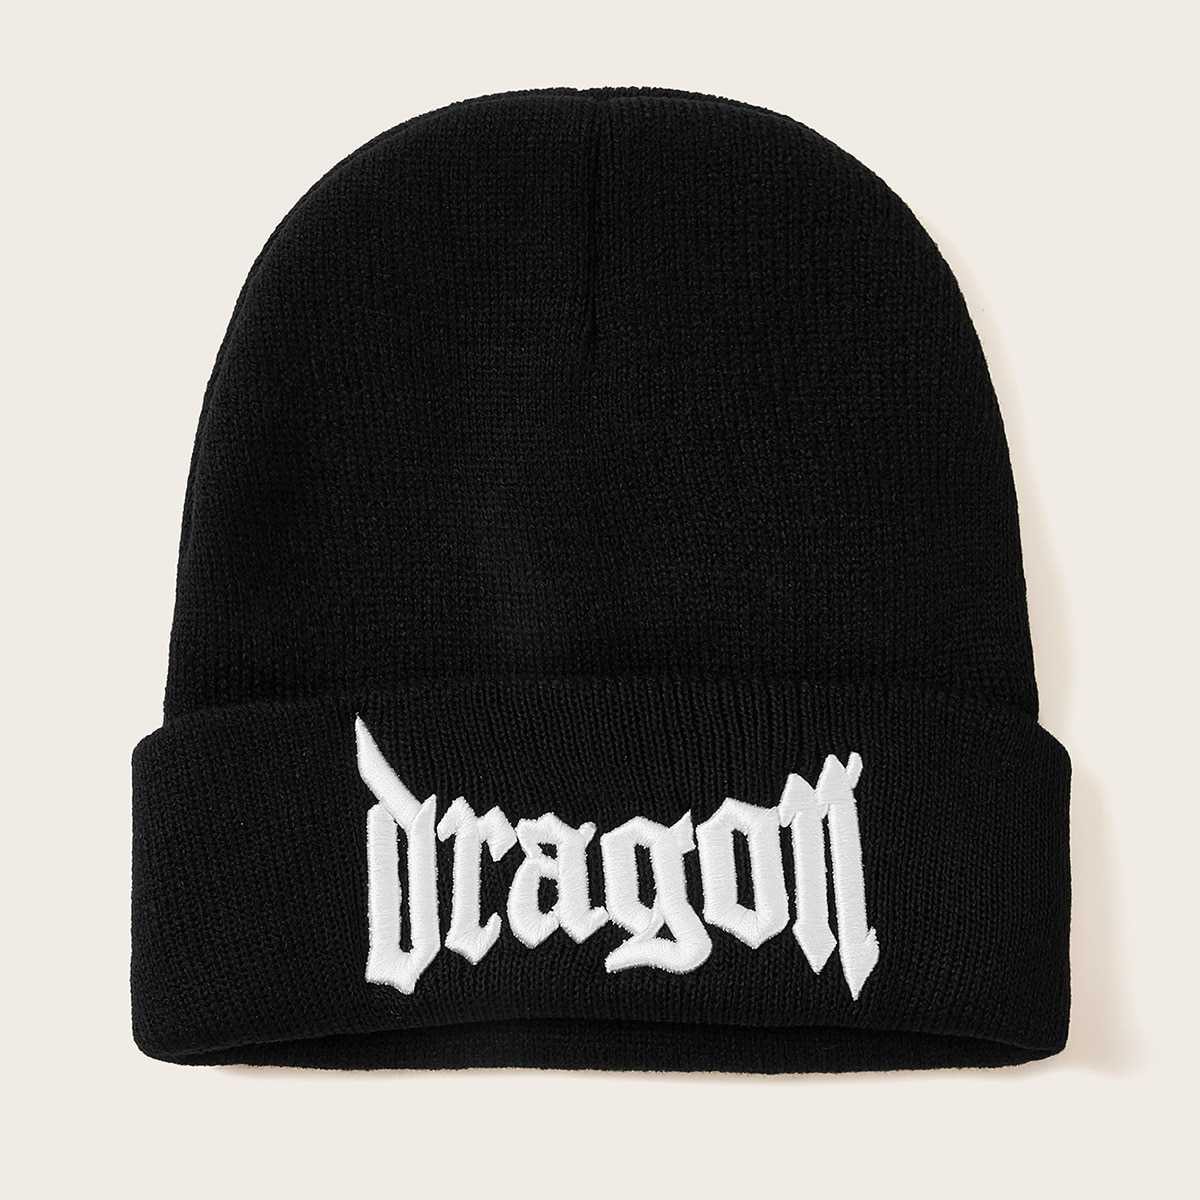 Guys Letter Embroidery Cuffed Beanie in Black by ROMWE on GOOFASH